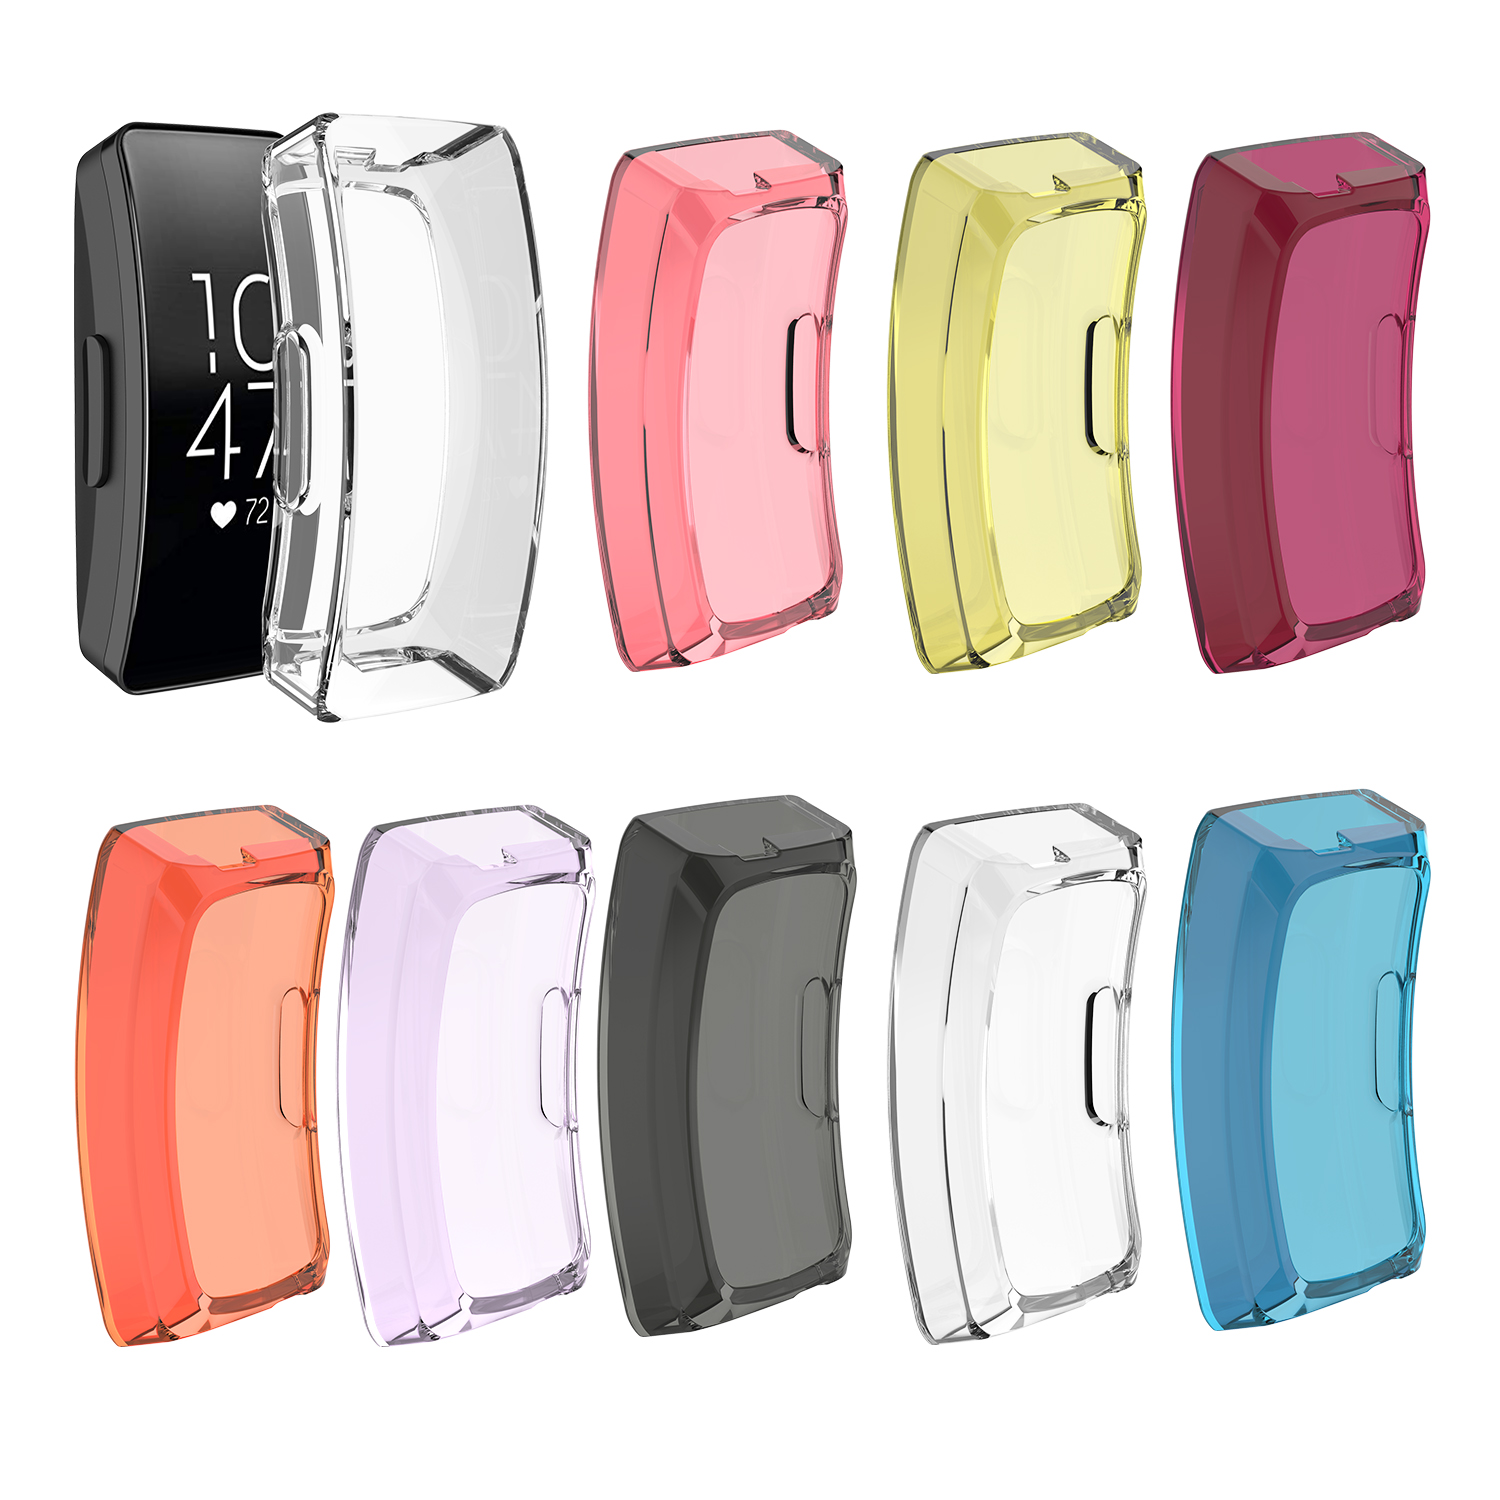 Transparent Protector For Fitbit Inspire Inspire HR/Fitbit Ace 2 Watch Case Soft TPU Protective Cover For Fitbit Ace 2 Shell